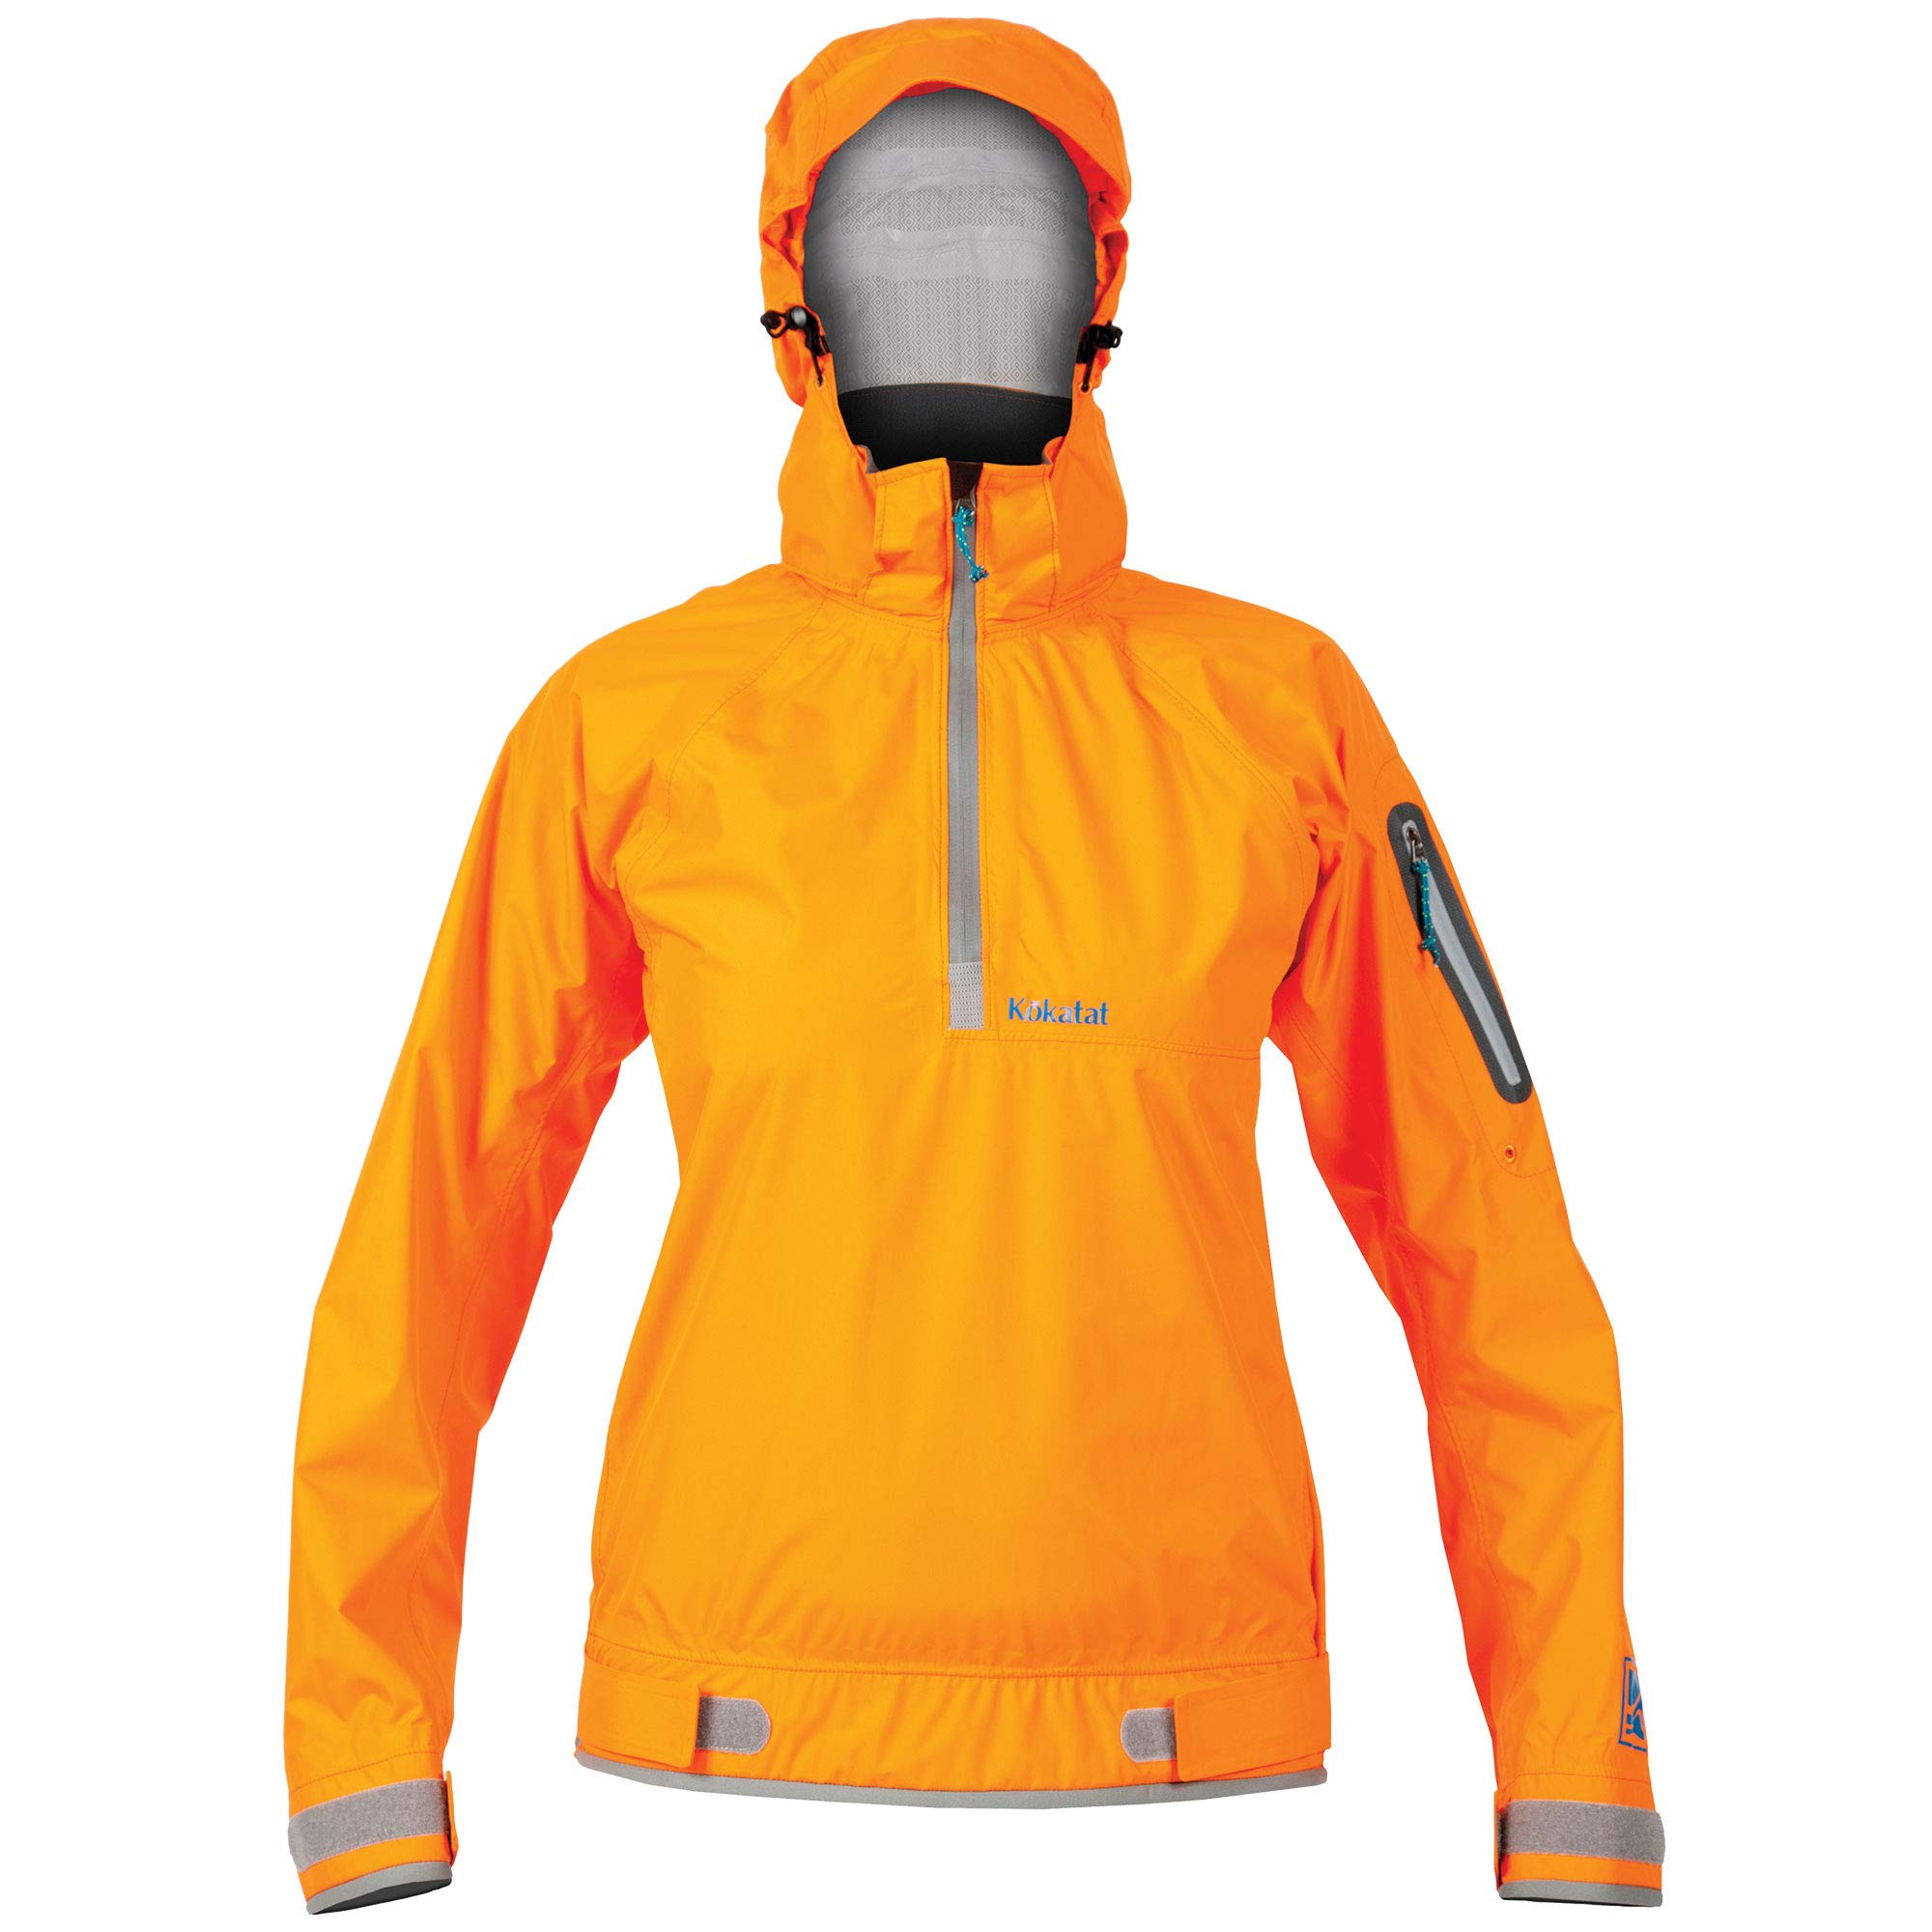 Kokatat Women's Hydrus Jetty Paddling Jacket-Orange-S by Kokatat